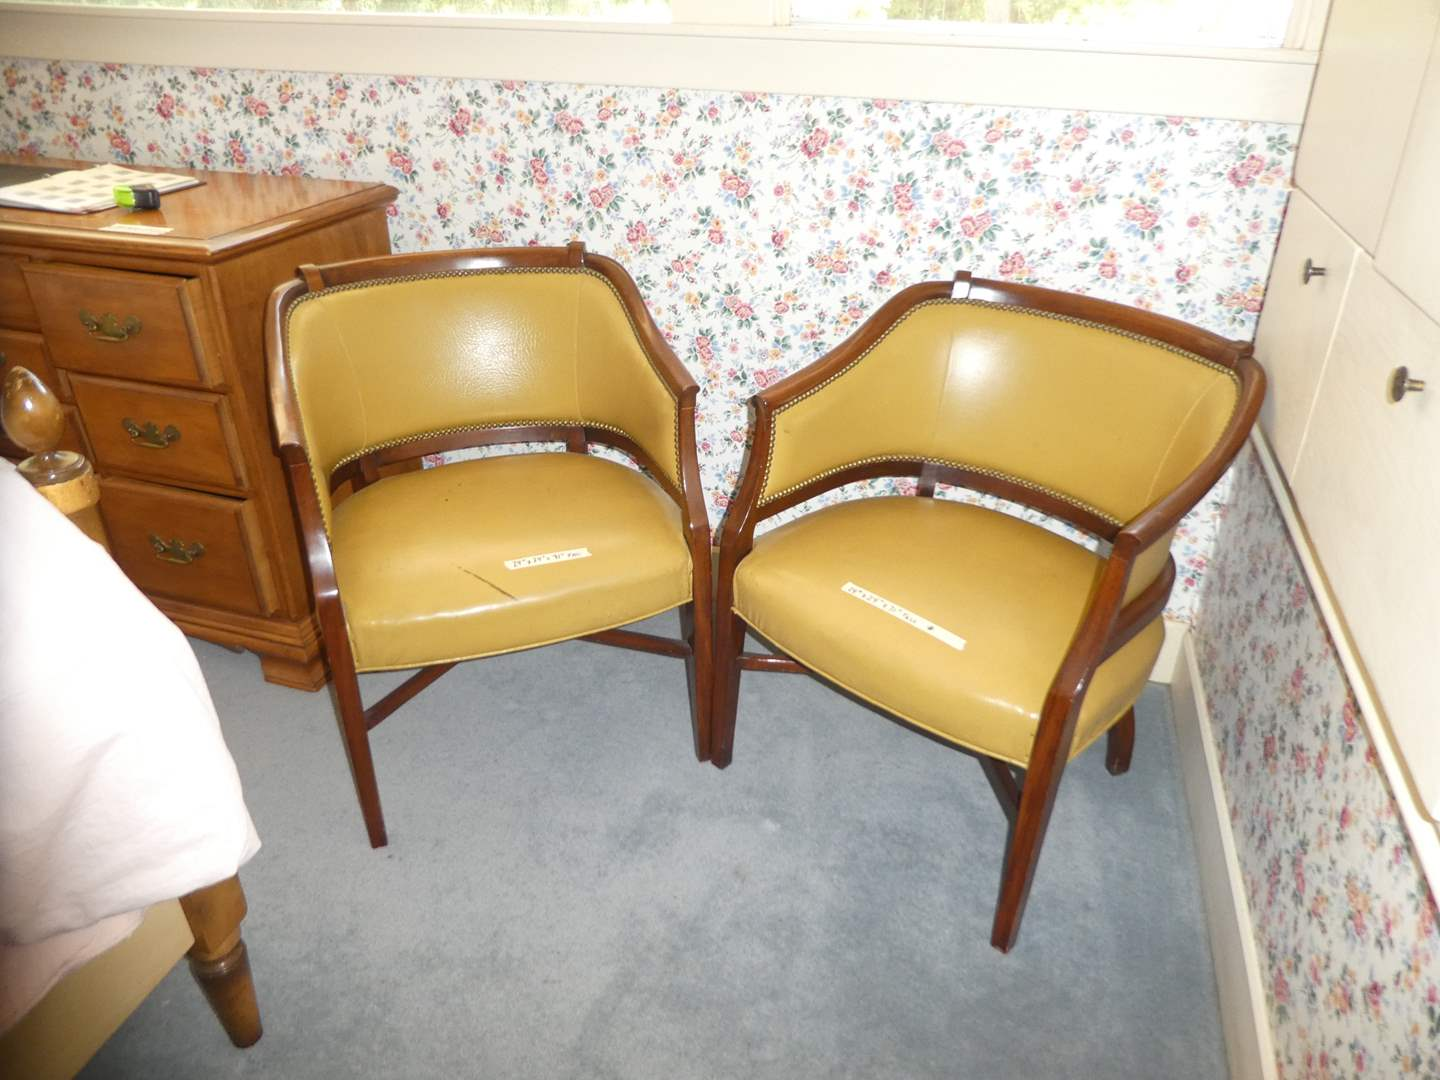 Lot # 10 - Pair of Adorable Vintage Leather Accent Chairs w/ Nailed Trim Details